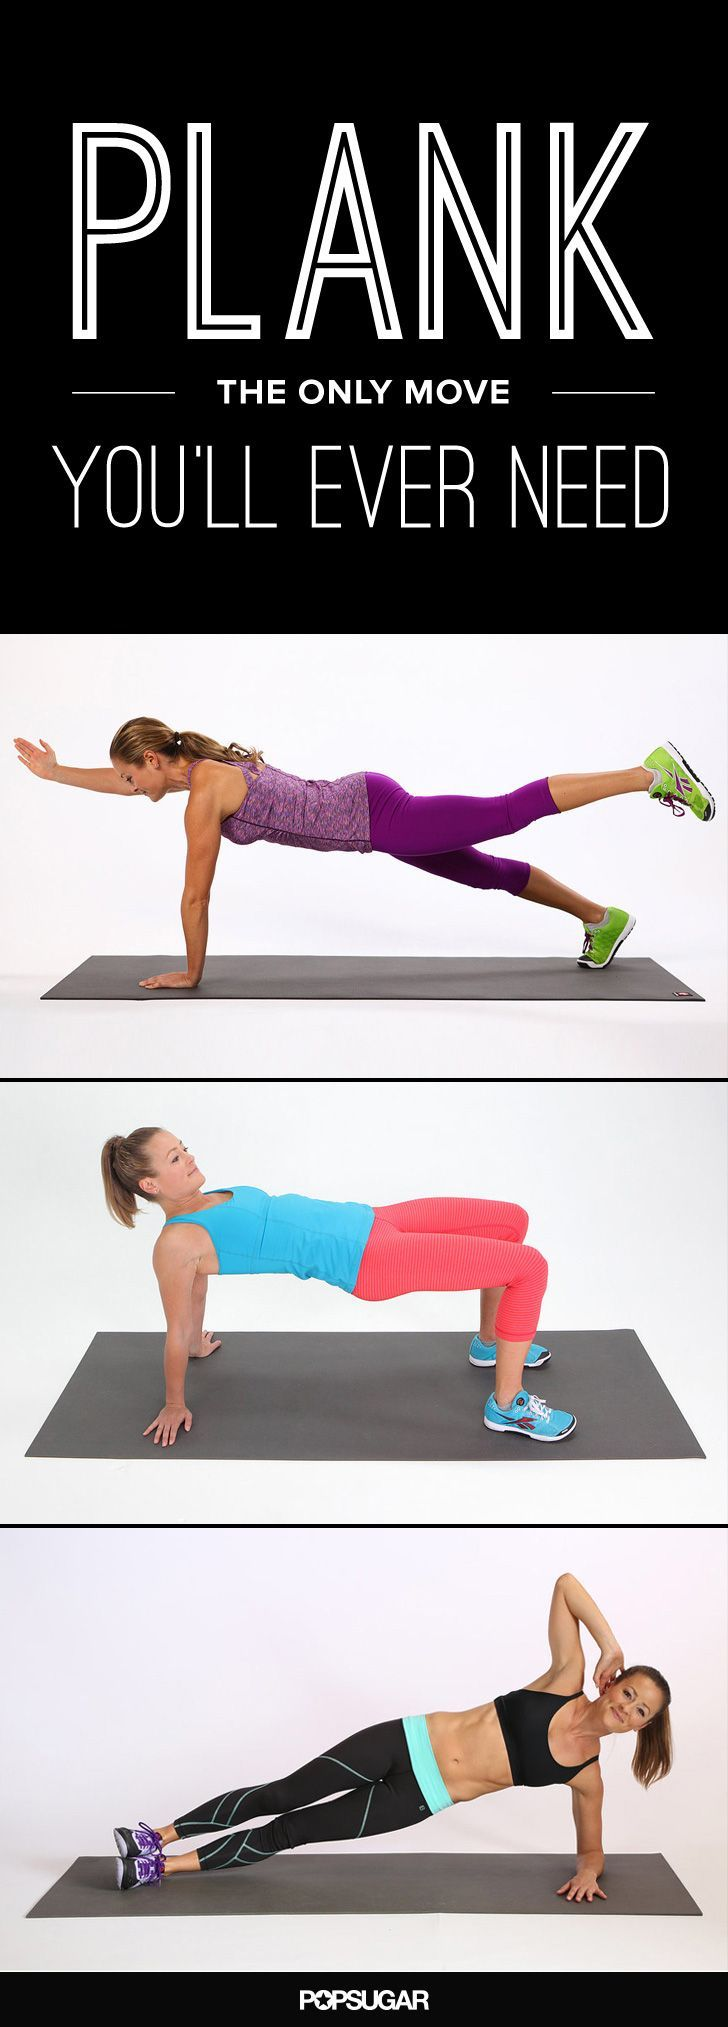 Short on time? Don't skip the strength-training session — get playful with the plank! By doing multitasking variations of this basic move, you can target your arms, back, core, legs, and booty to chisel out a stronger, more toned you.